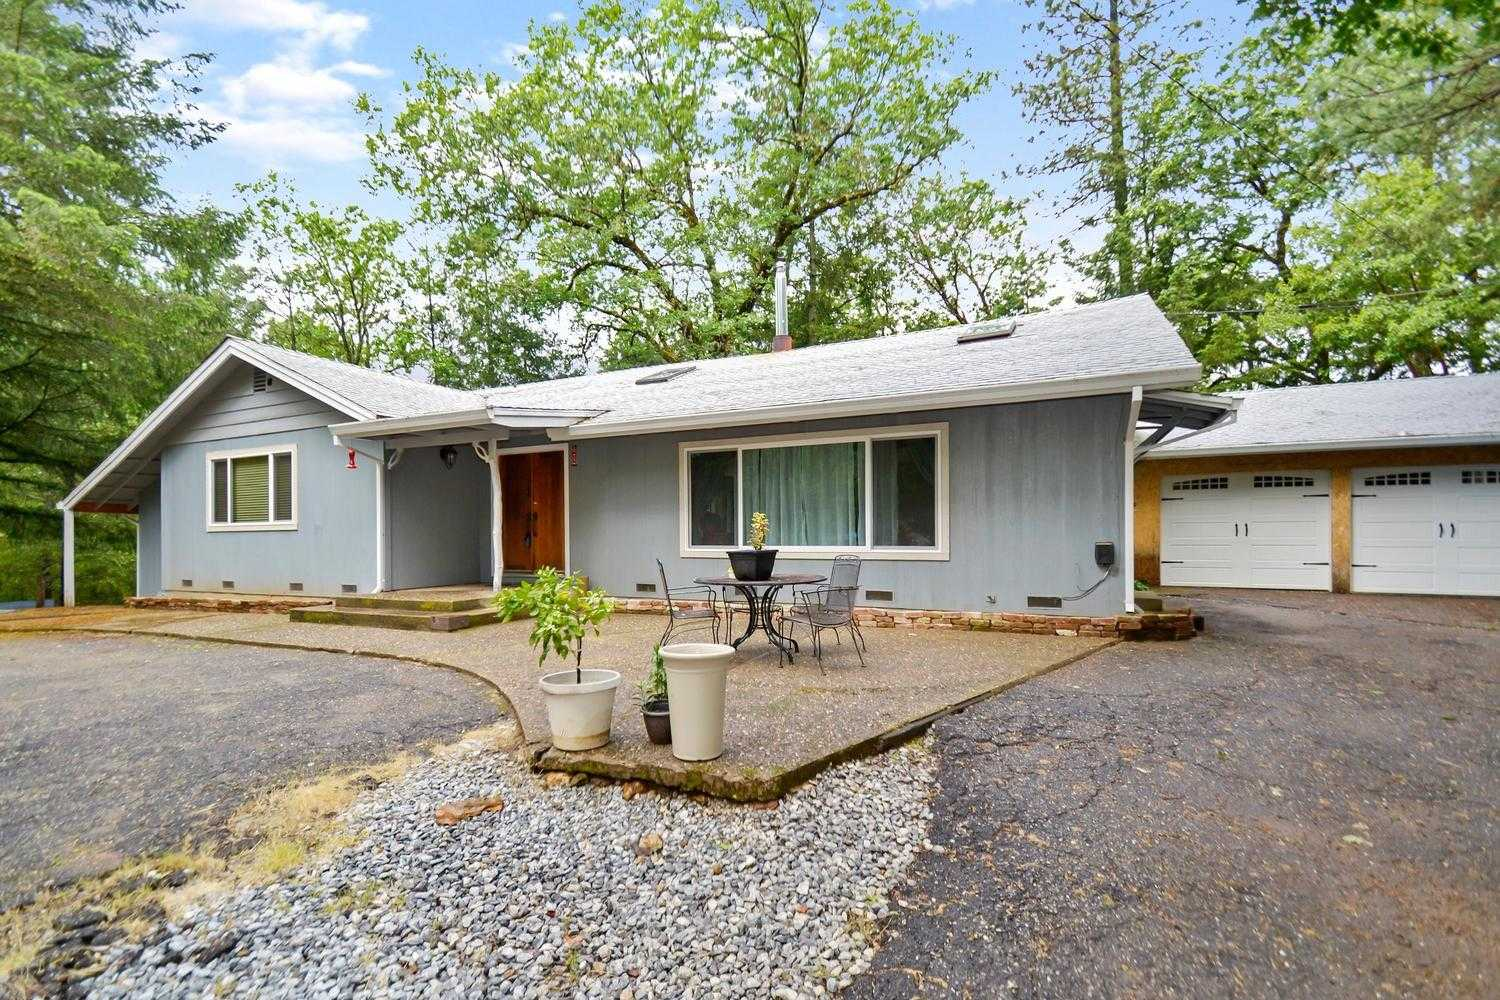 $329,000 - 3Br/2Ba -  for Sale in Pioneer